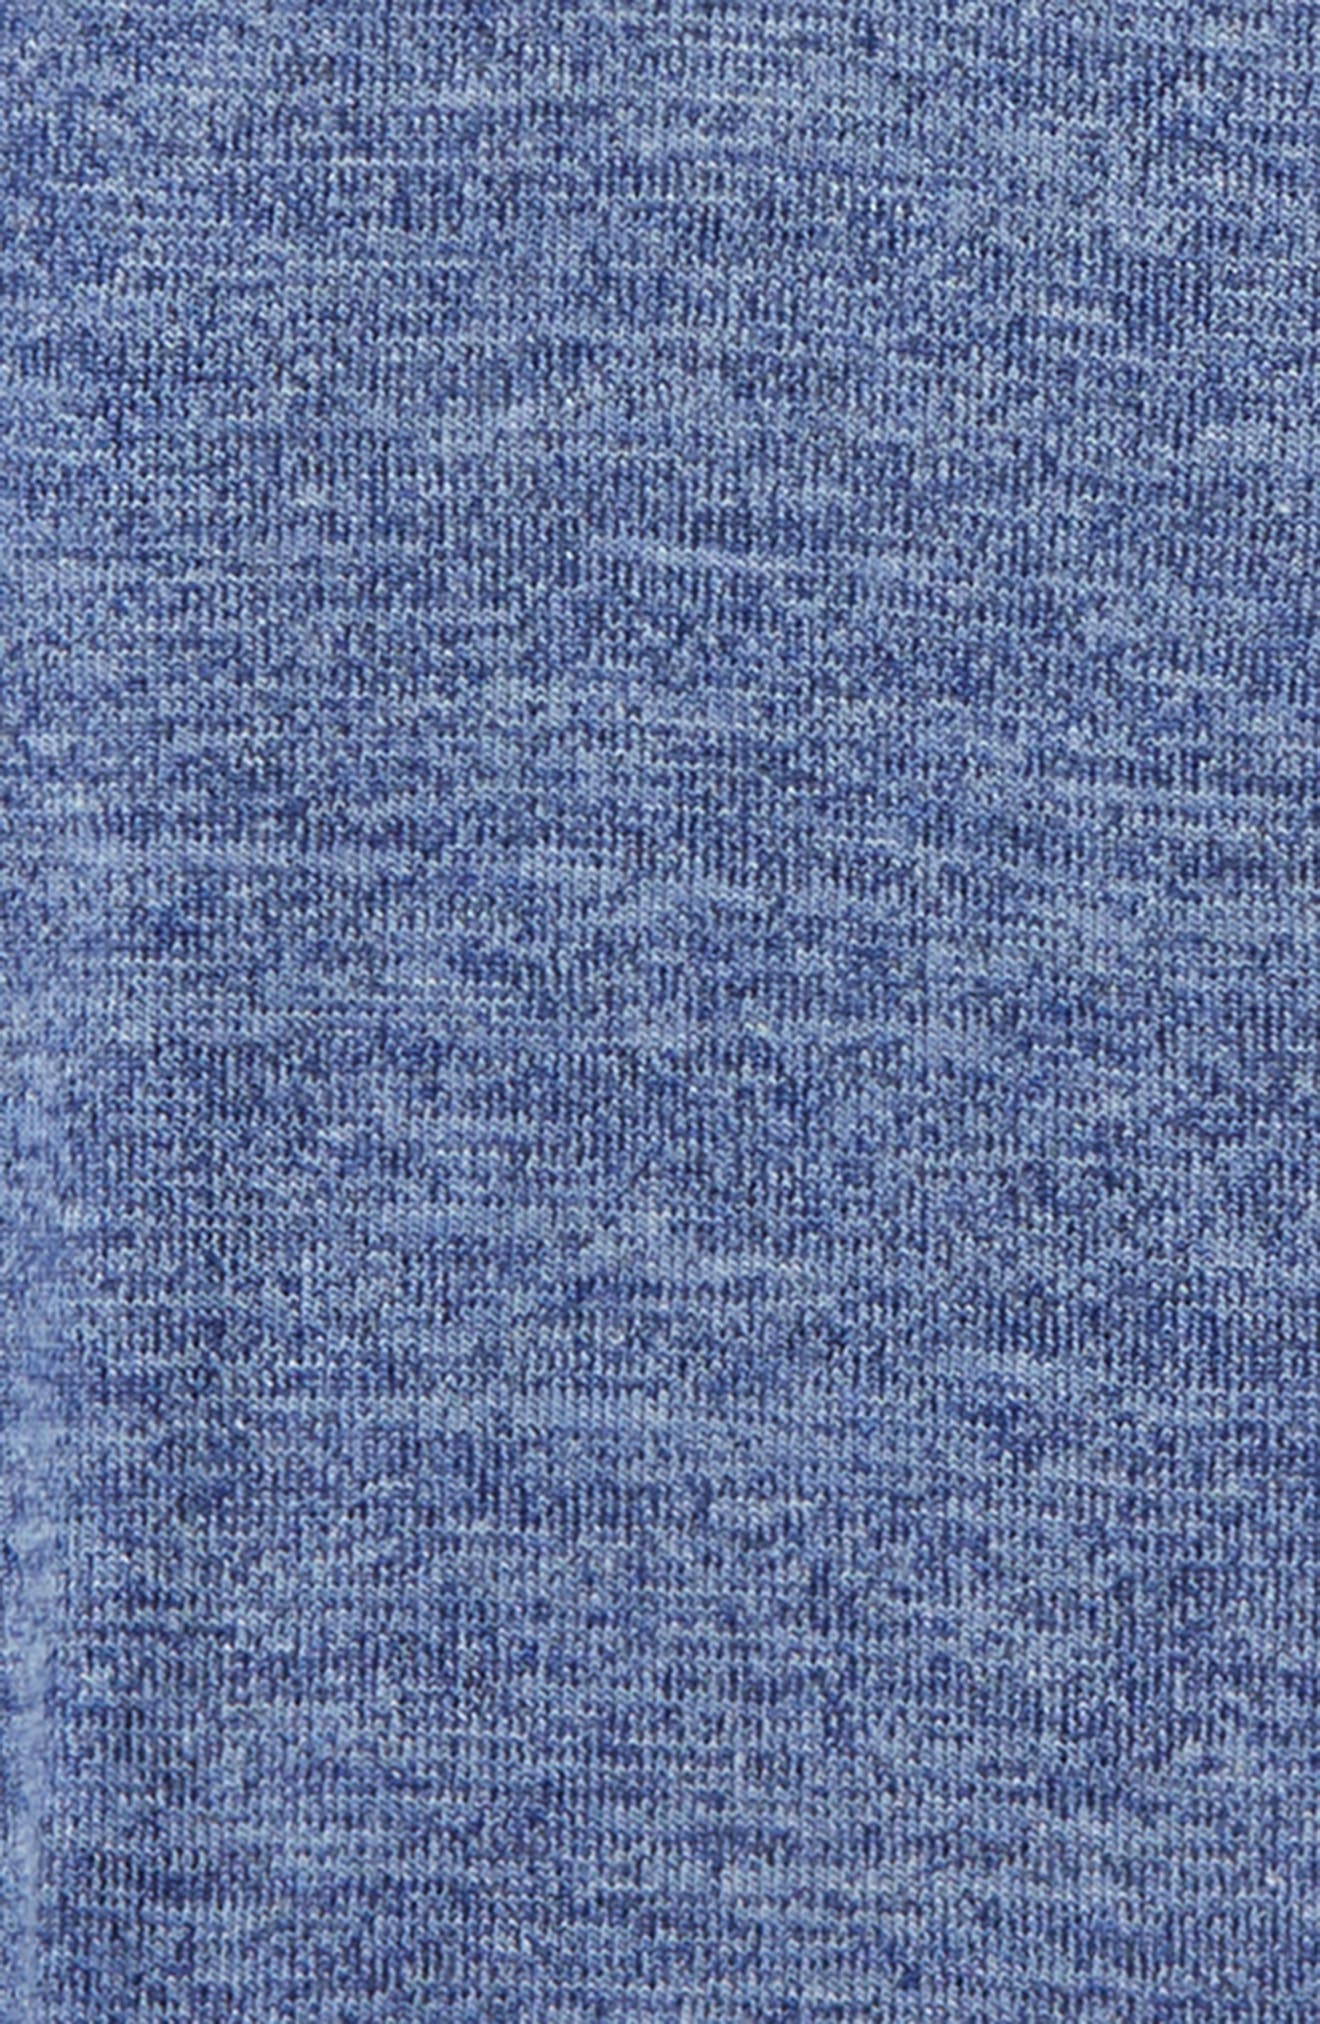 Landon Knit Shirt,                             Alternate thumbnail 2, color,                             Blue